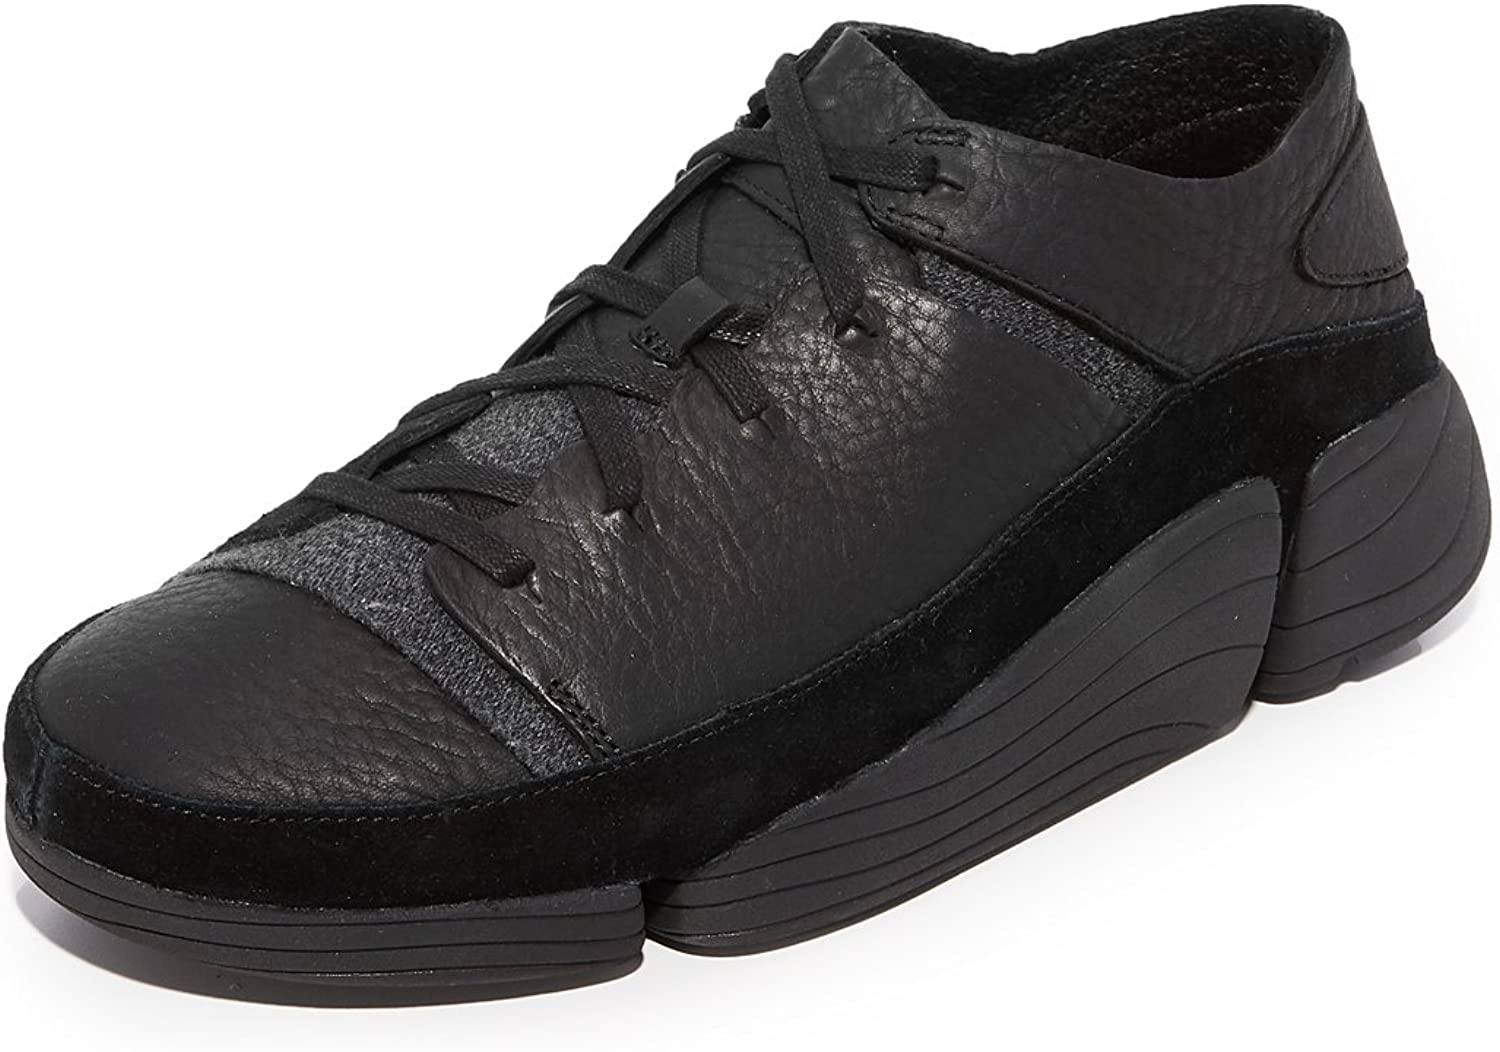 Clarks - Mens Trigenic Evo shoes, 11 D(M) US, Black Leather